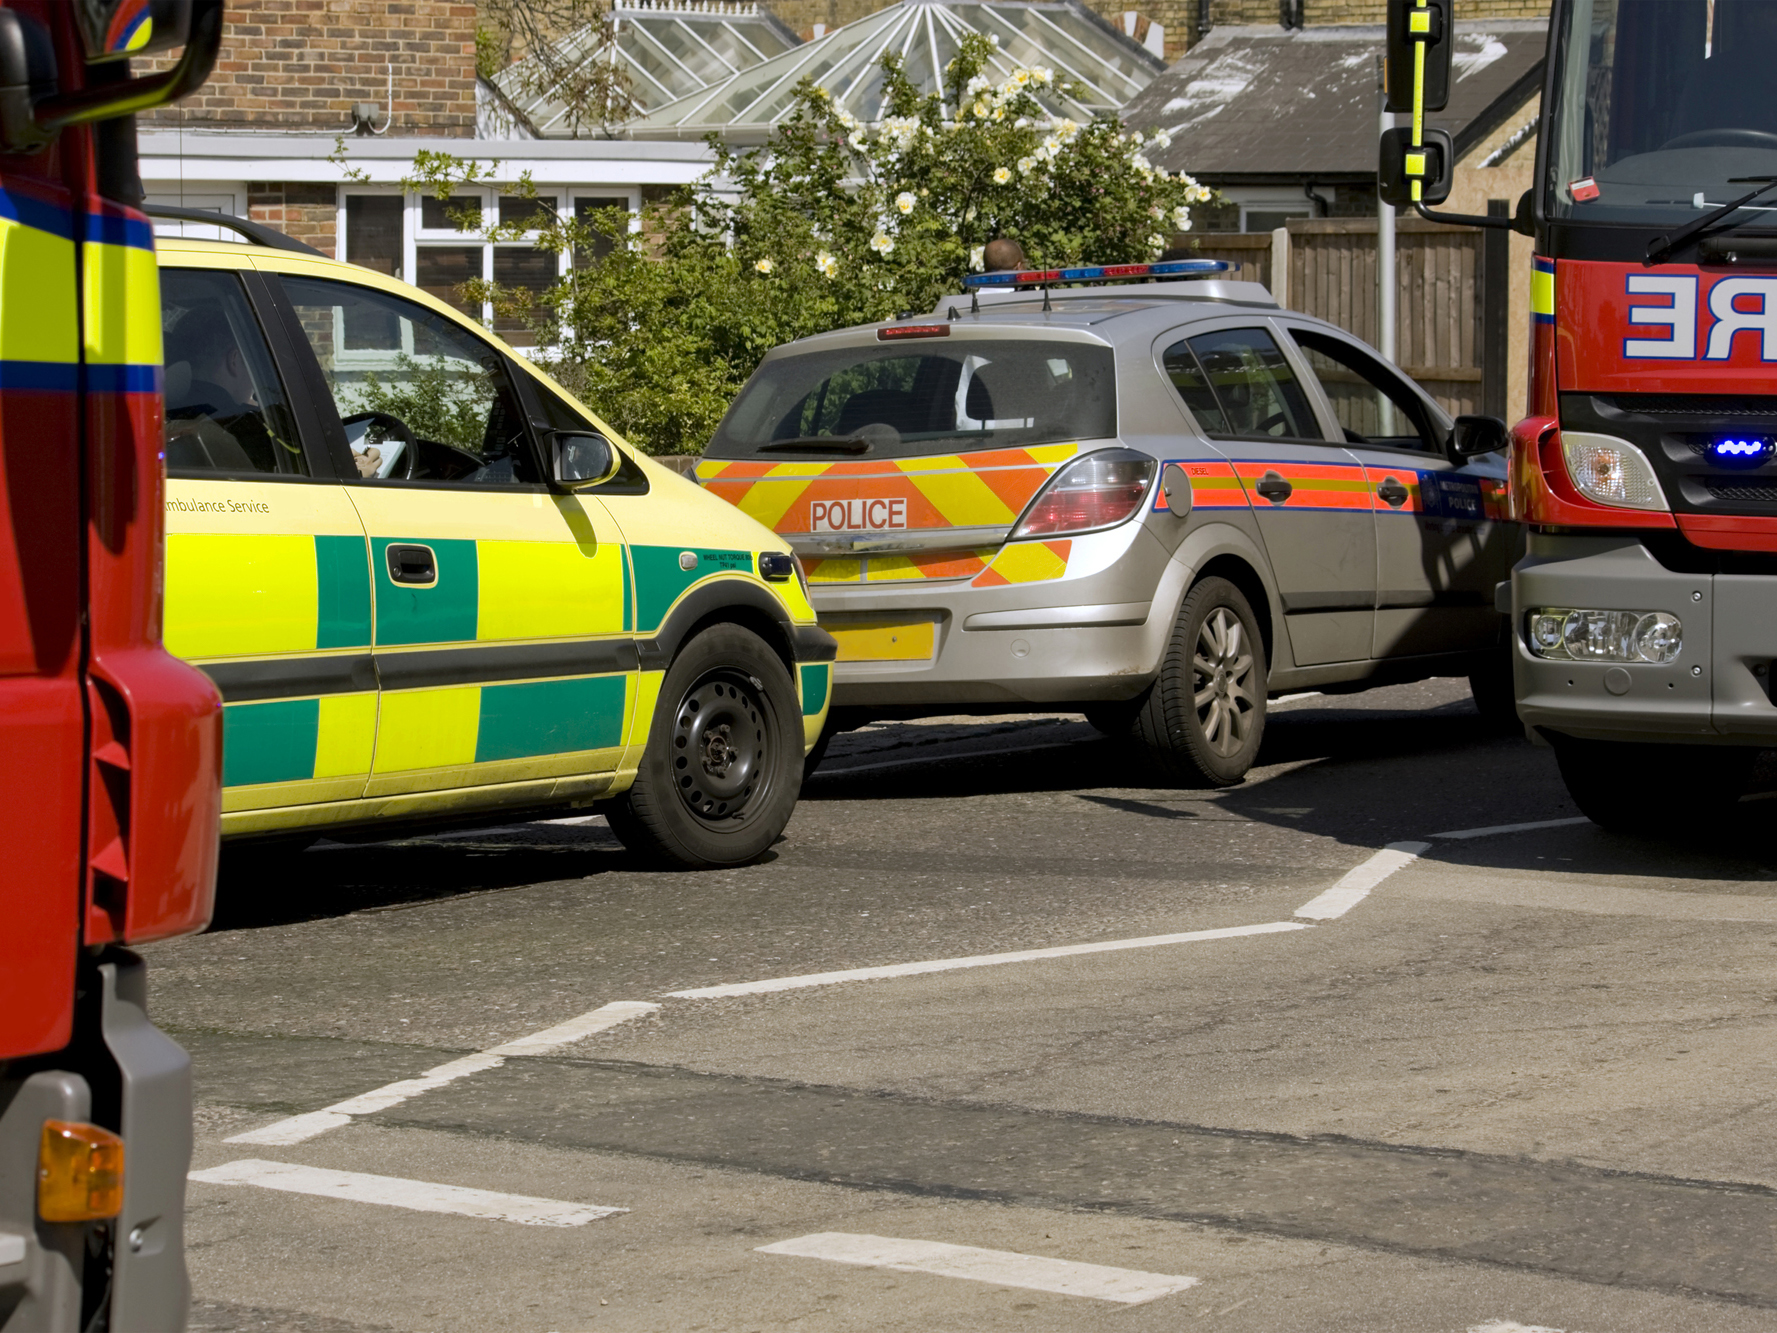 Reported Road Casualties on the rise